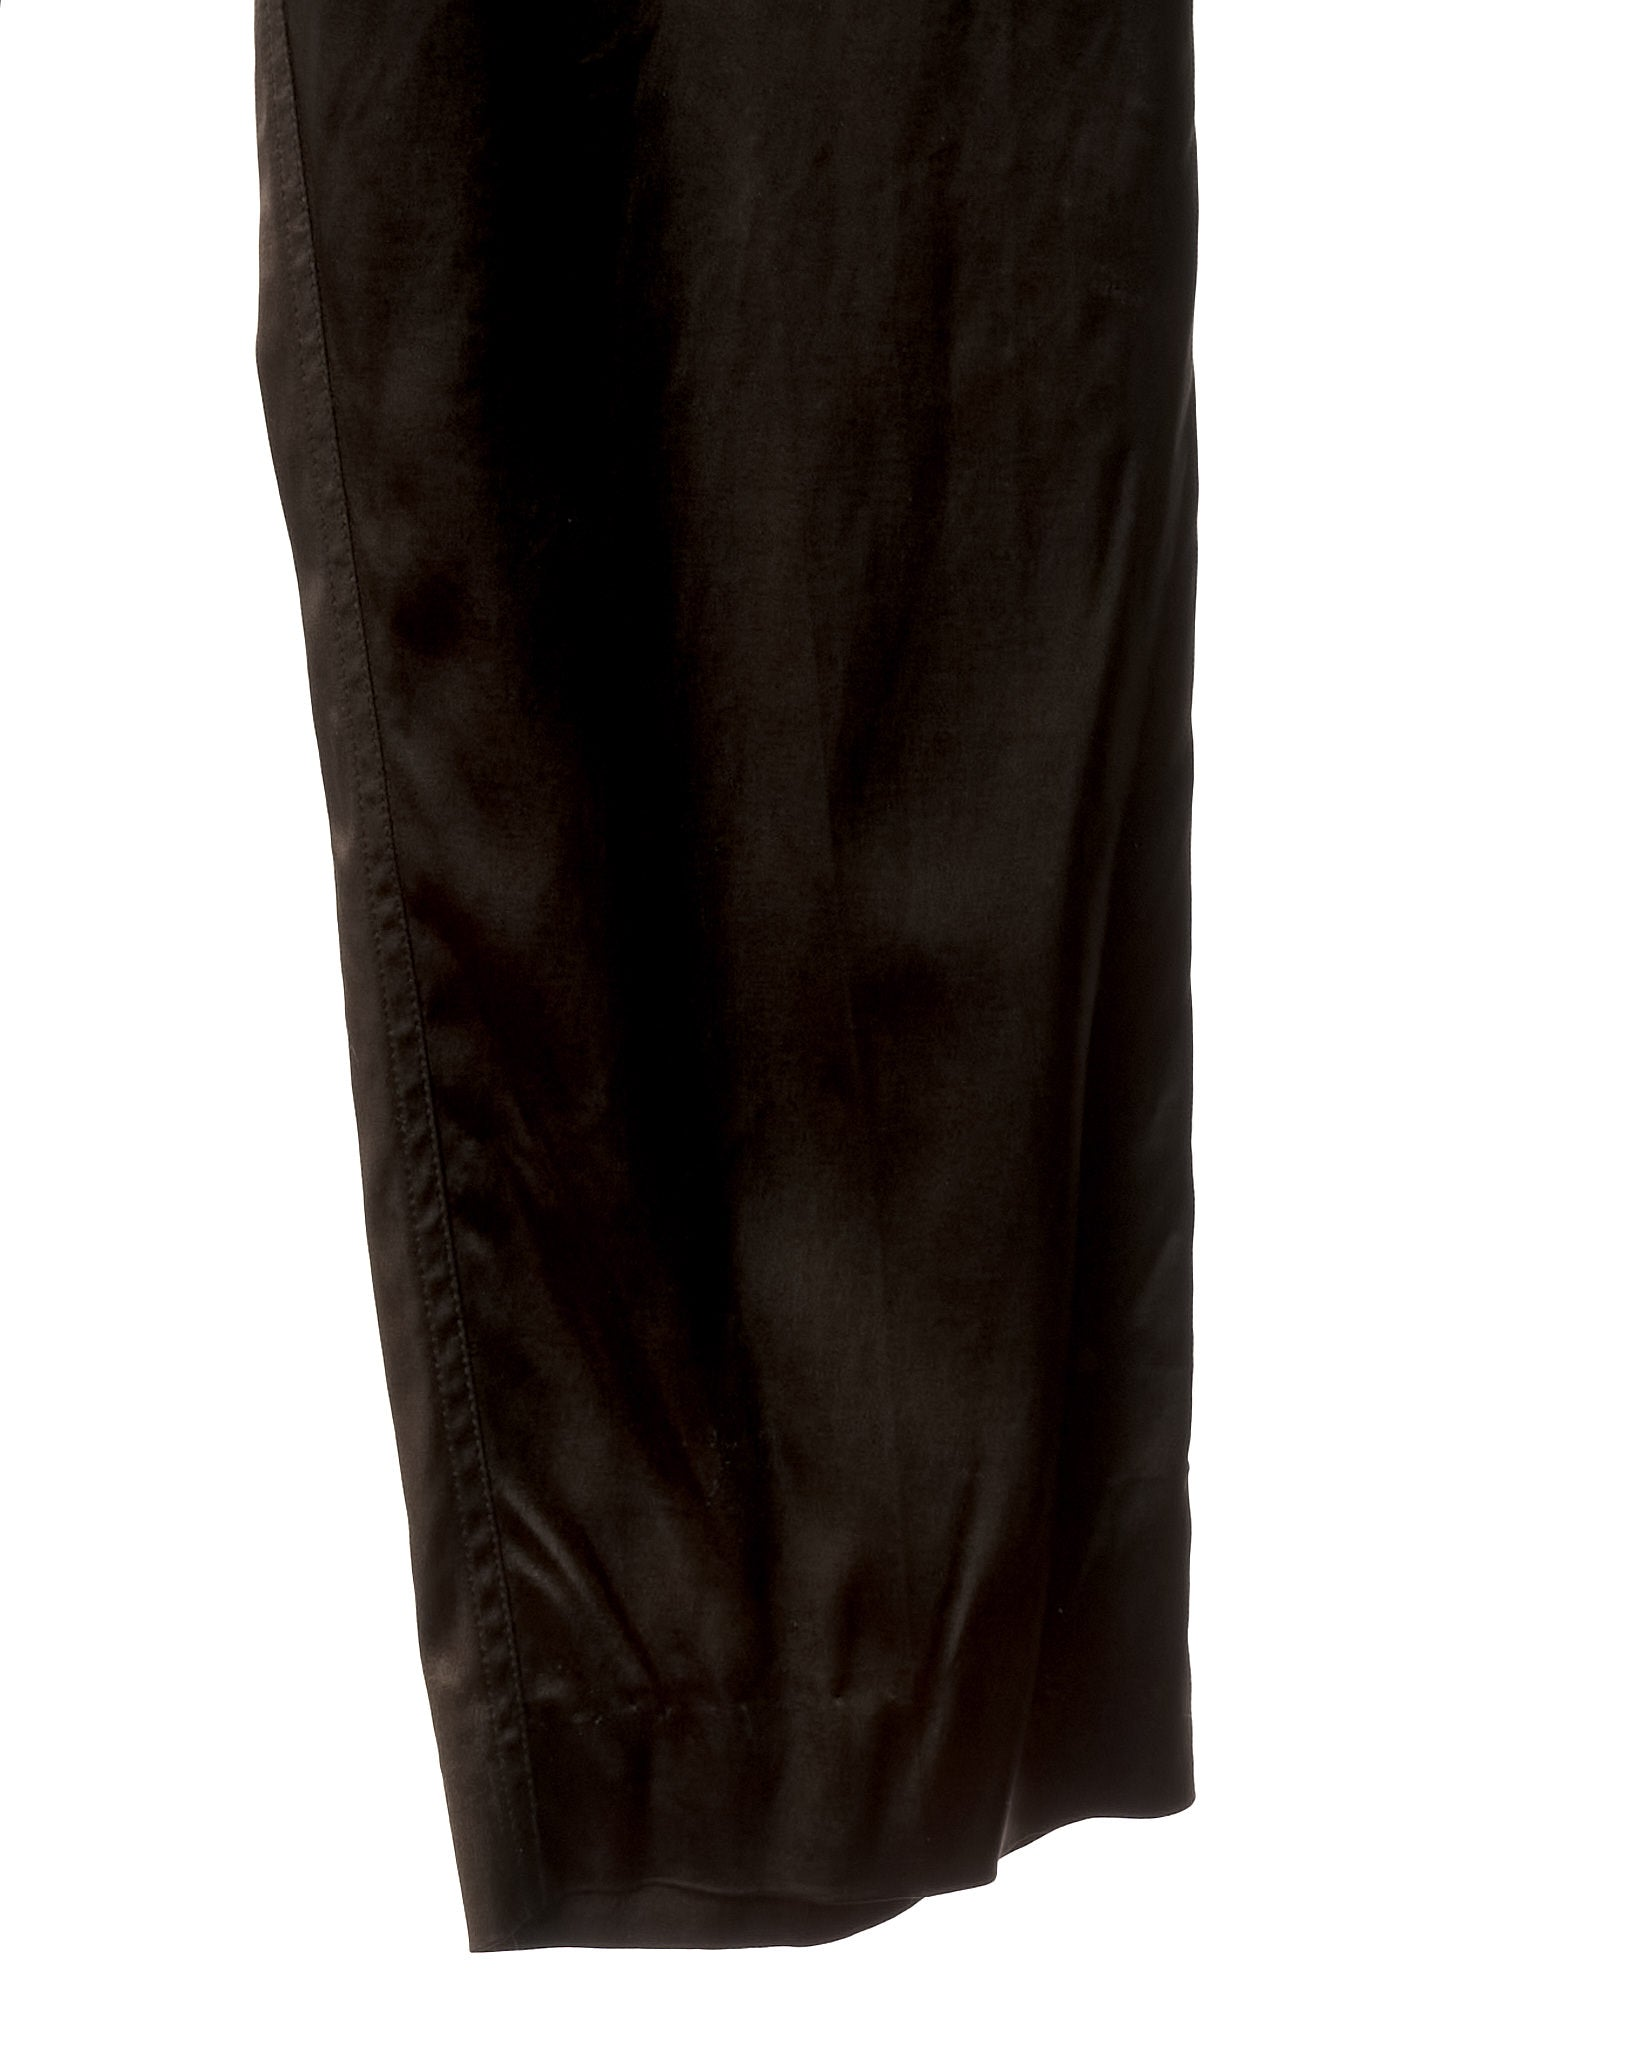 Cocoa Vintage Satin Stretch Trousers